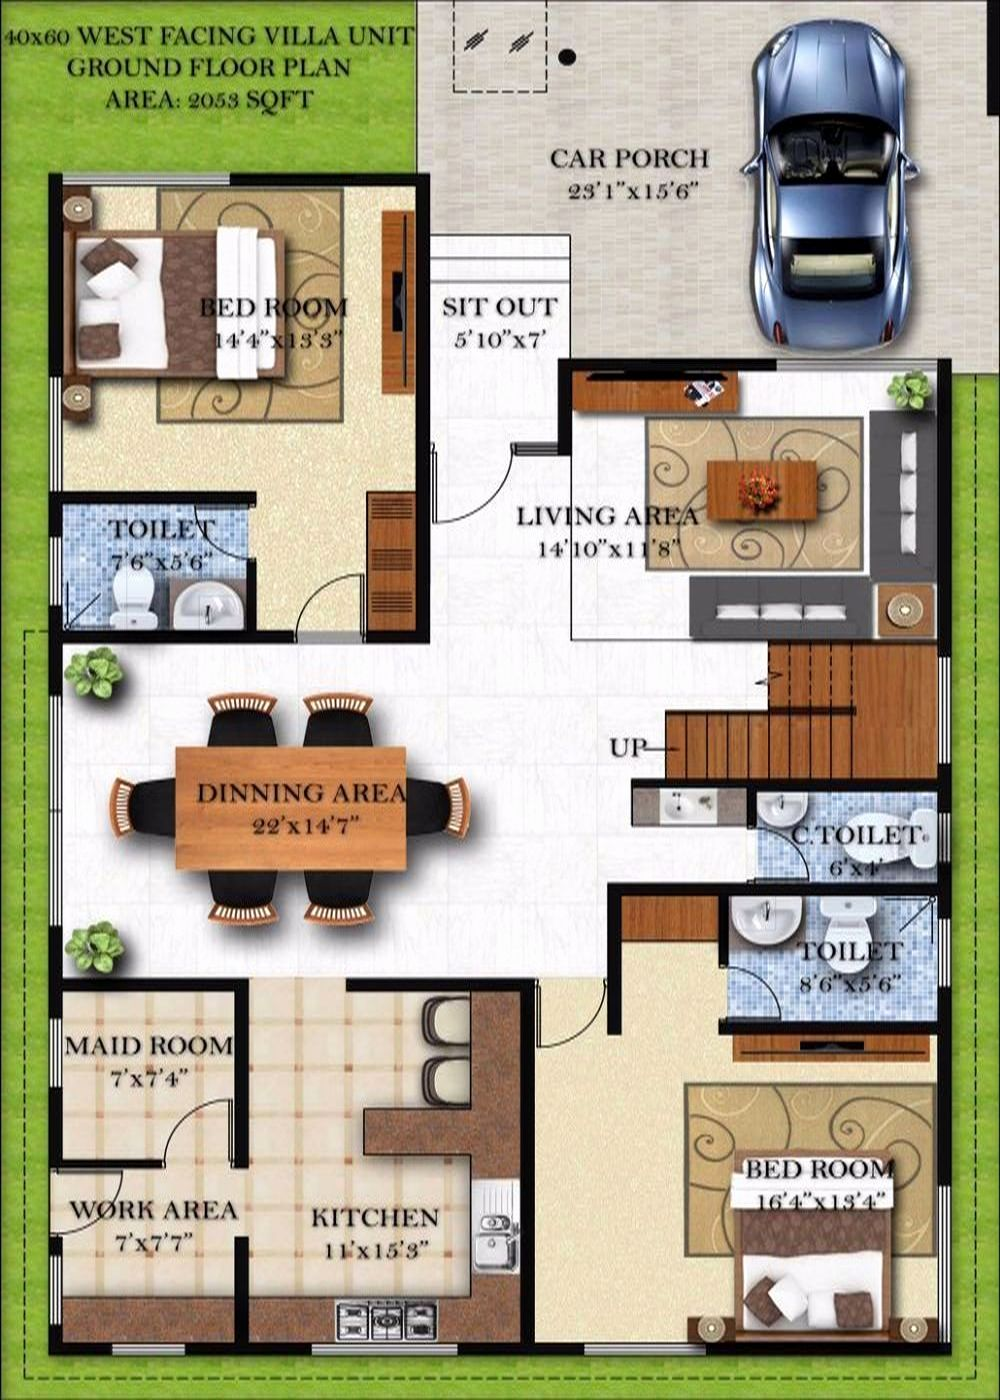 30 40 Duplex House Plans With Car Parking East Facing 60